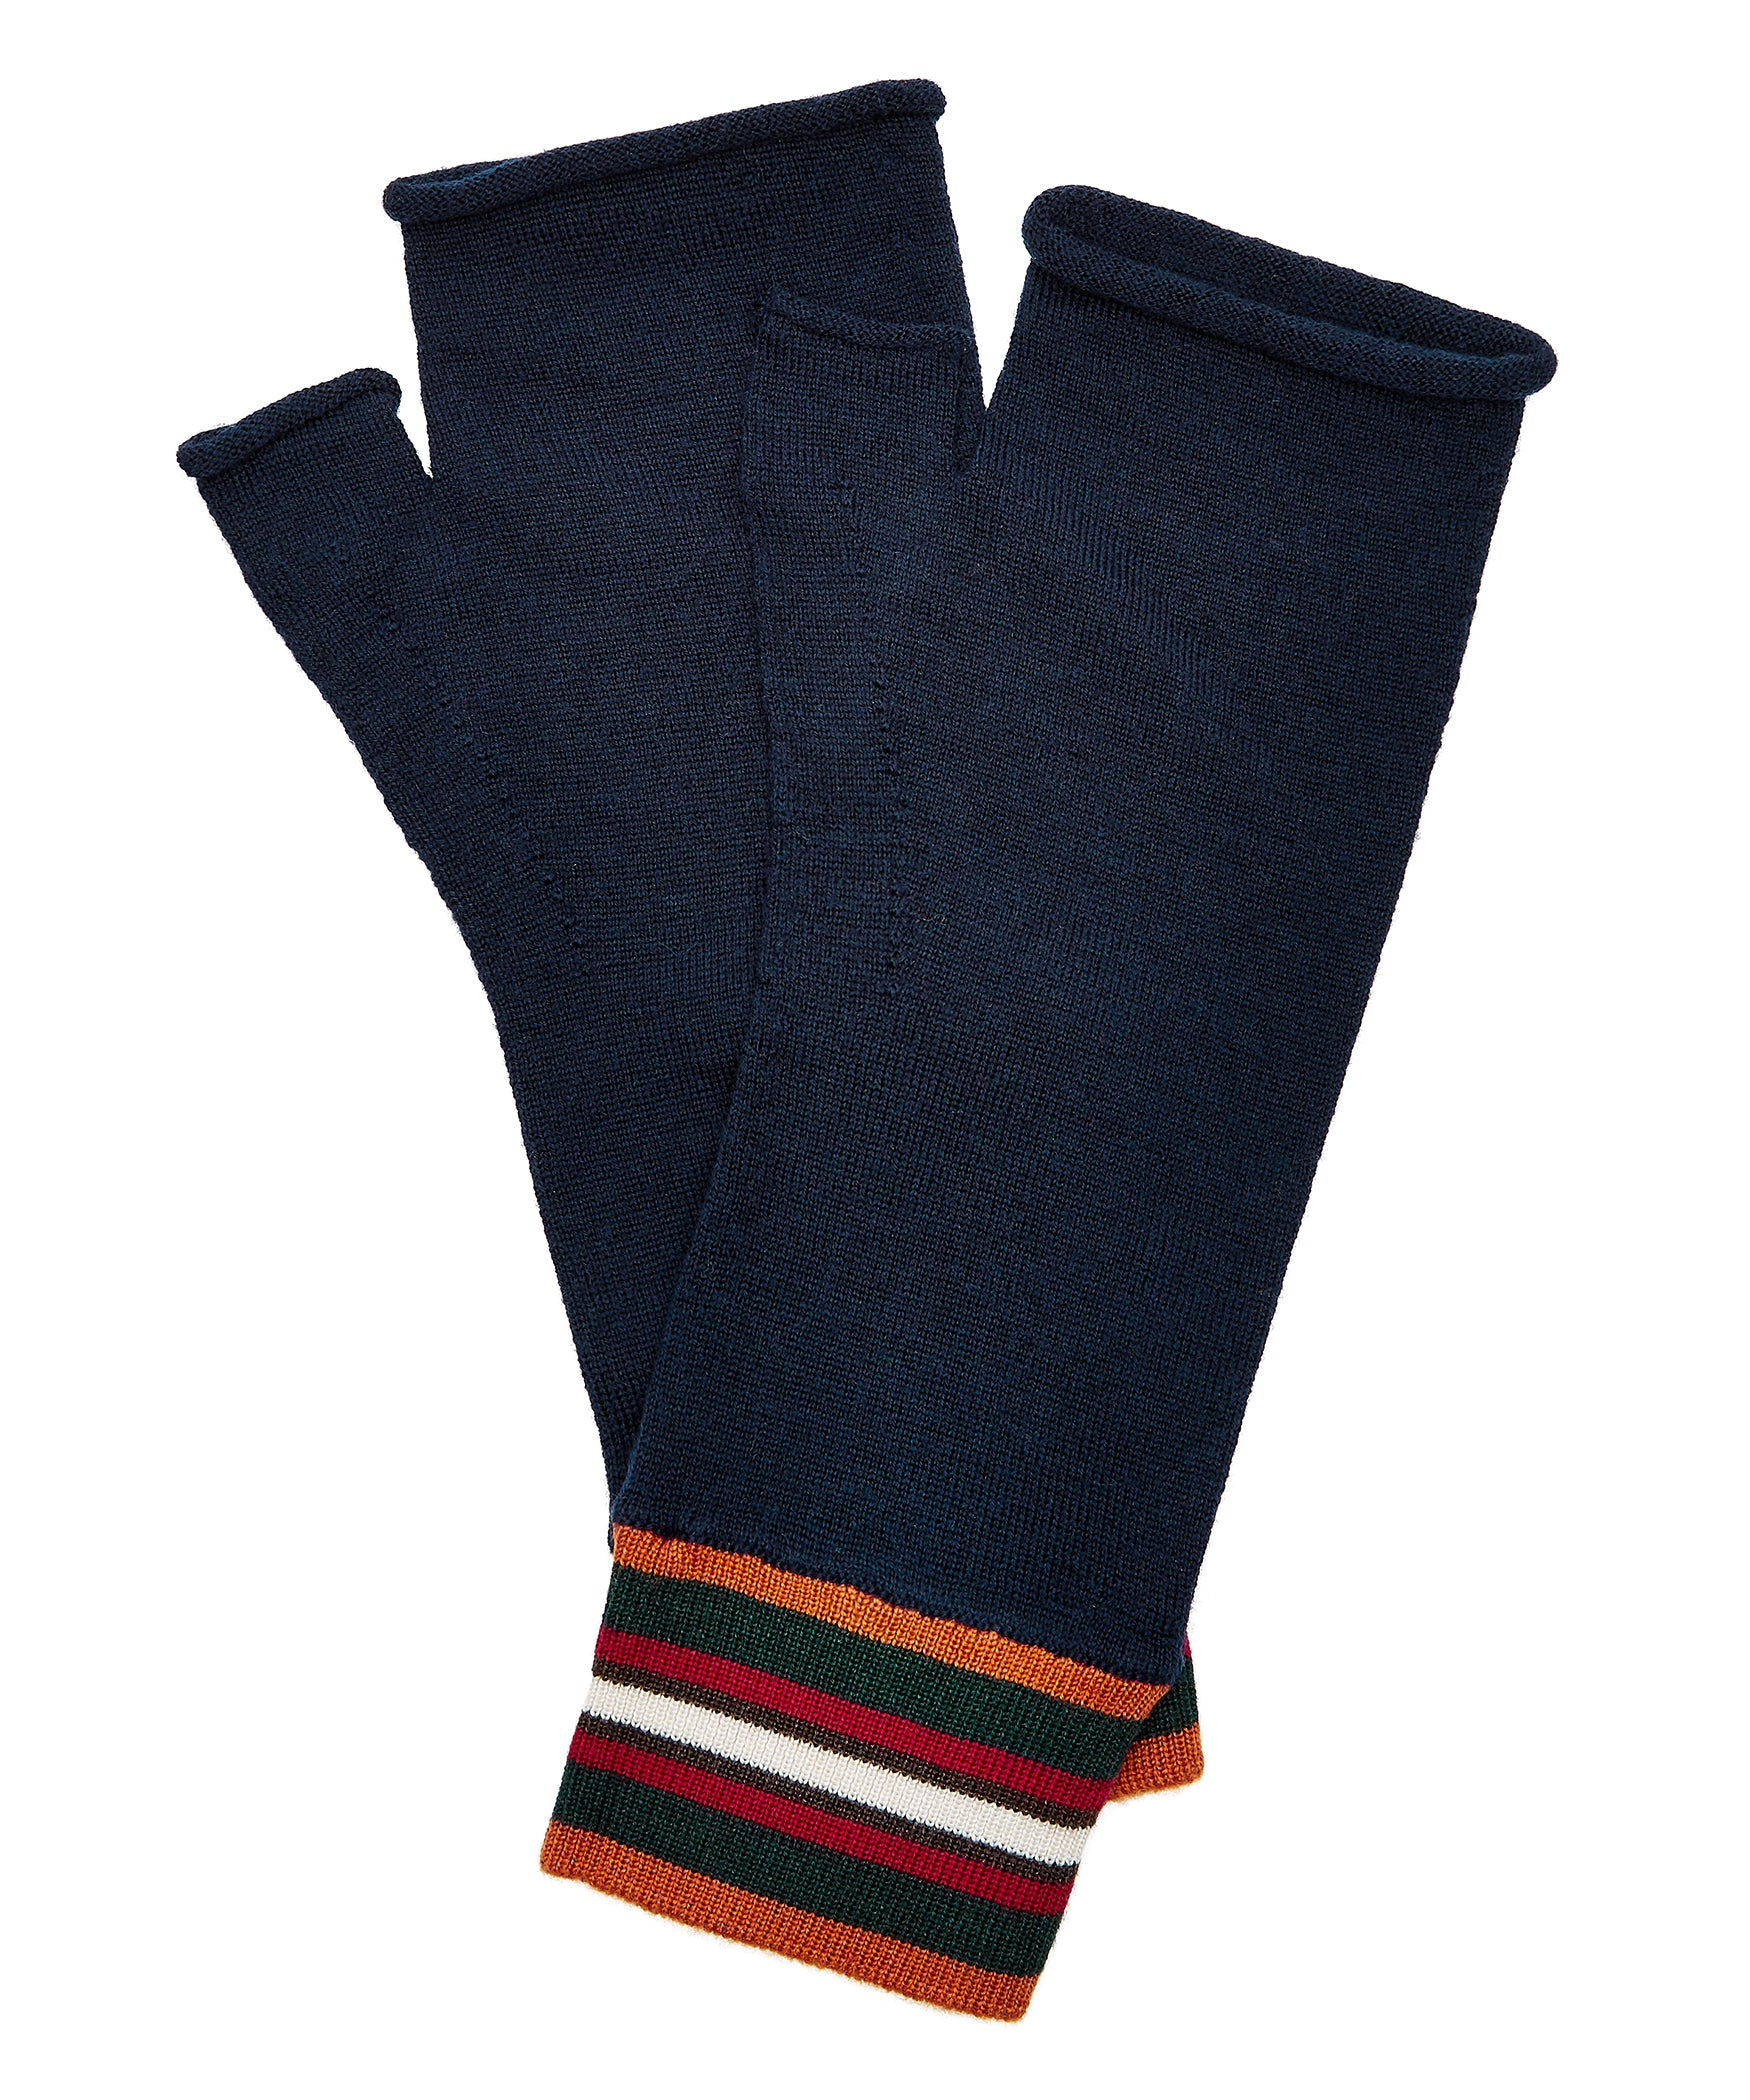 Navy Extrafine Merino Fingerless Gloves